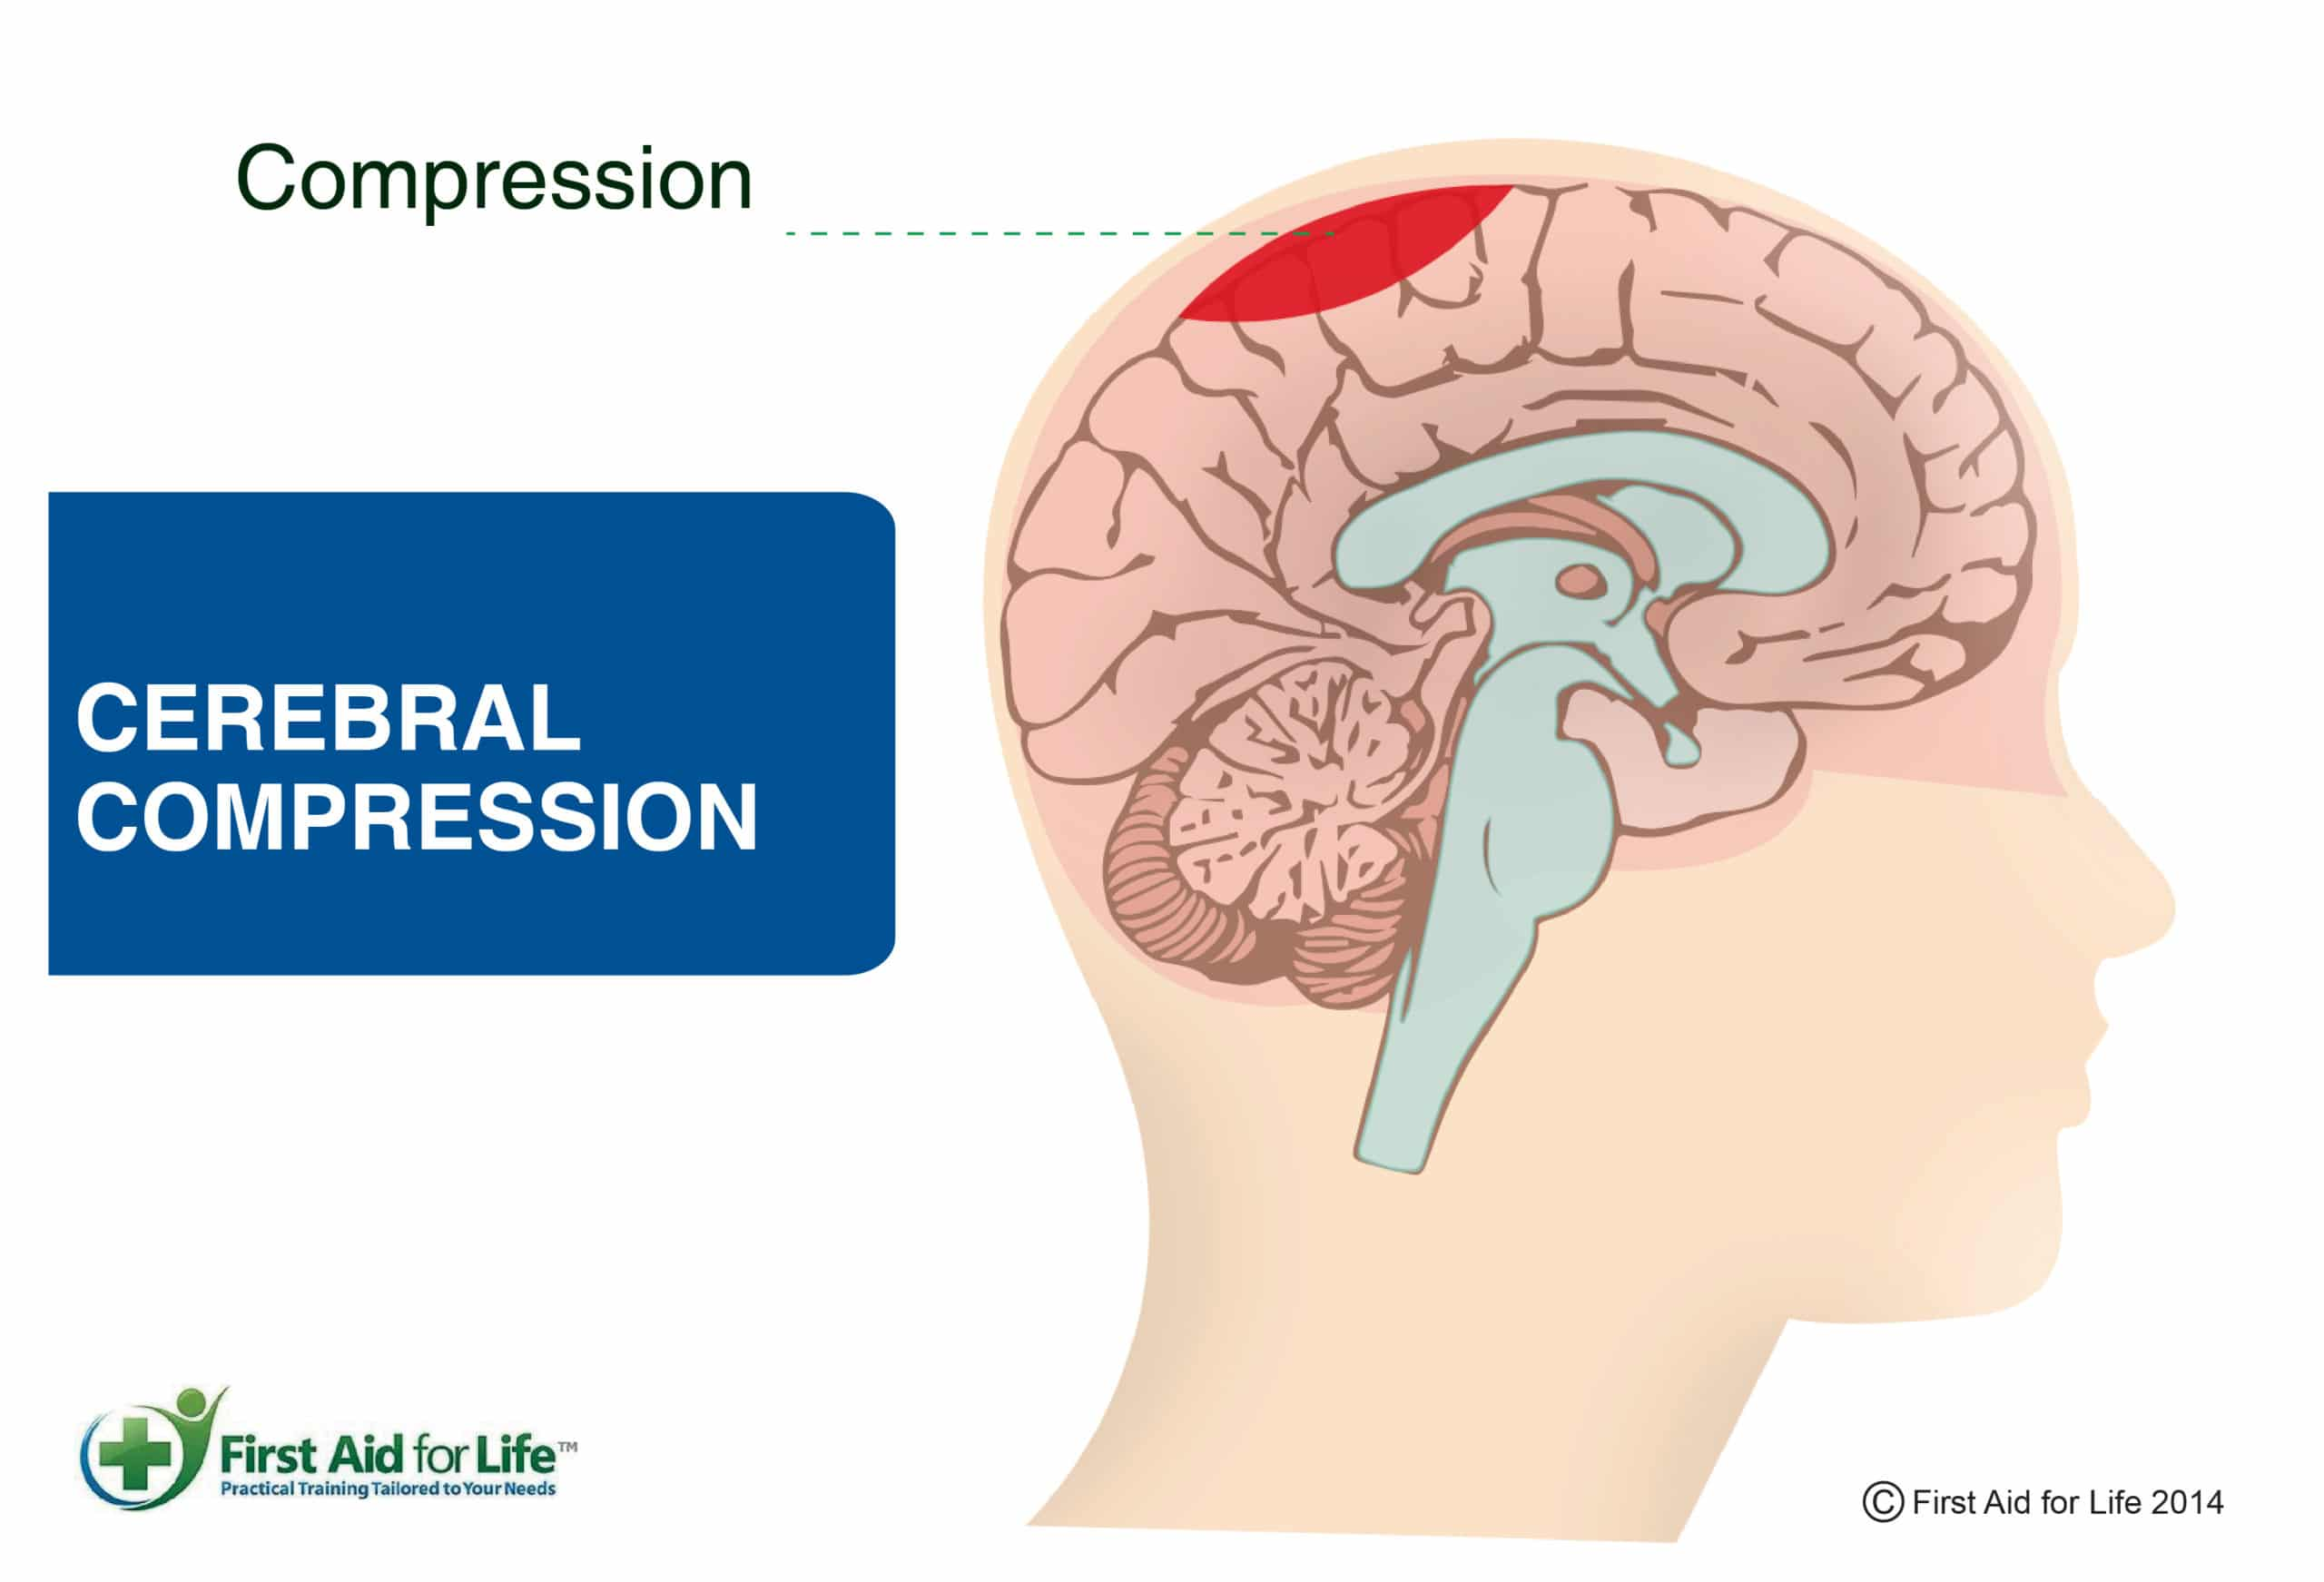 Concussion - what should we do? - First Aid for Life